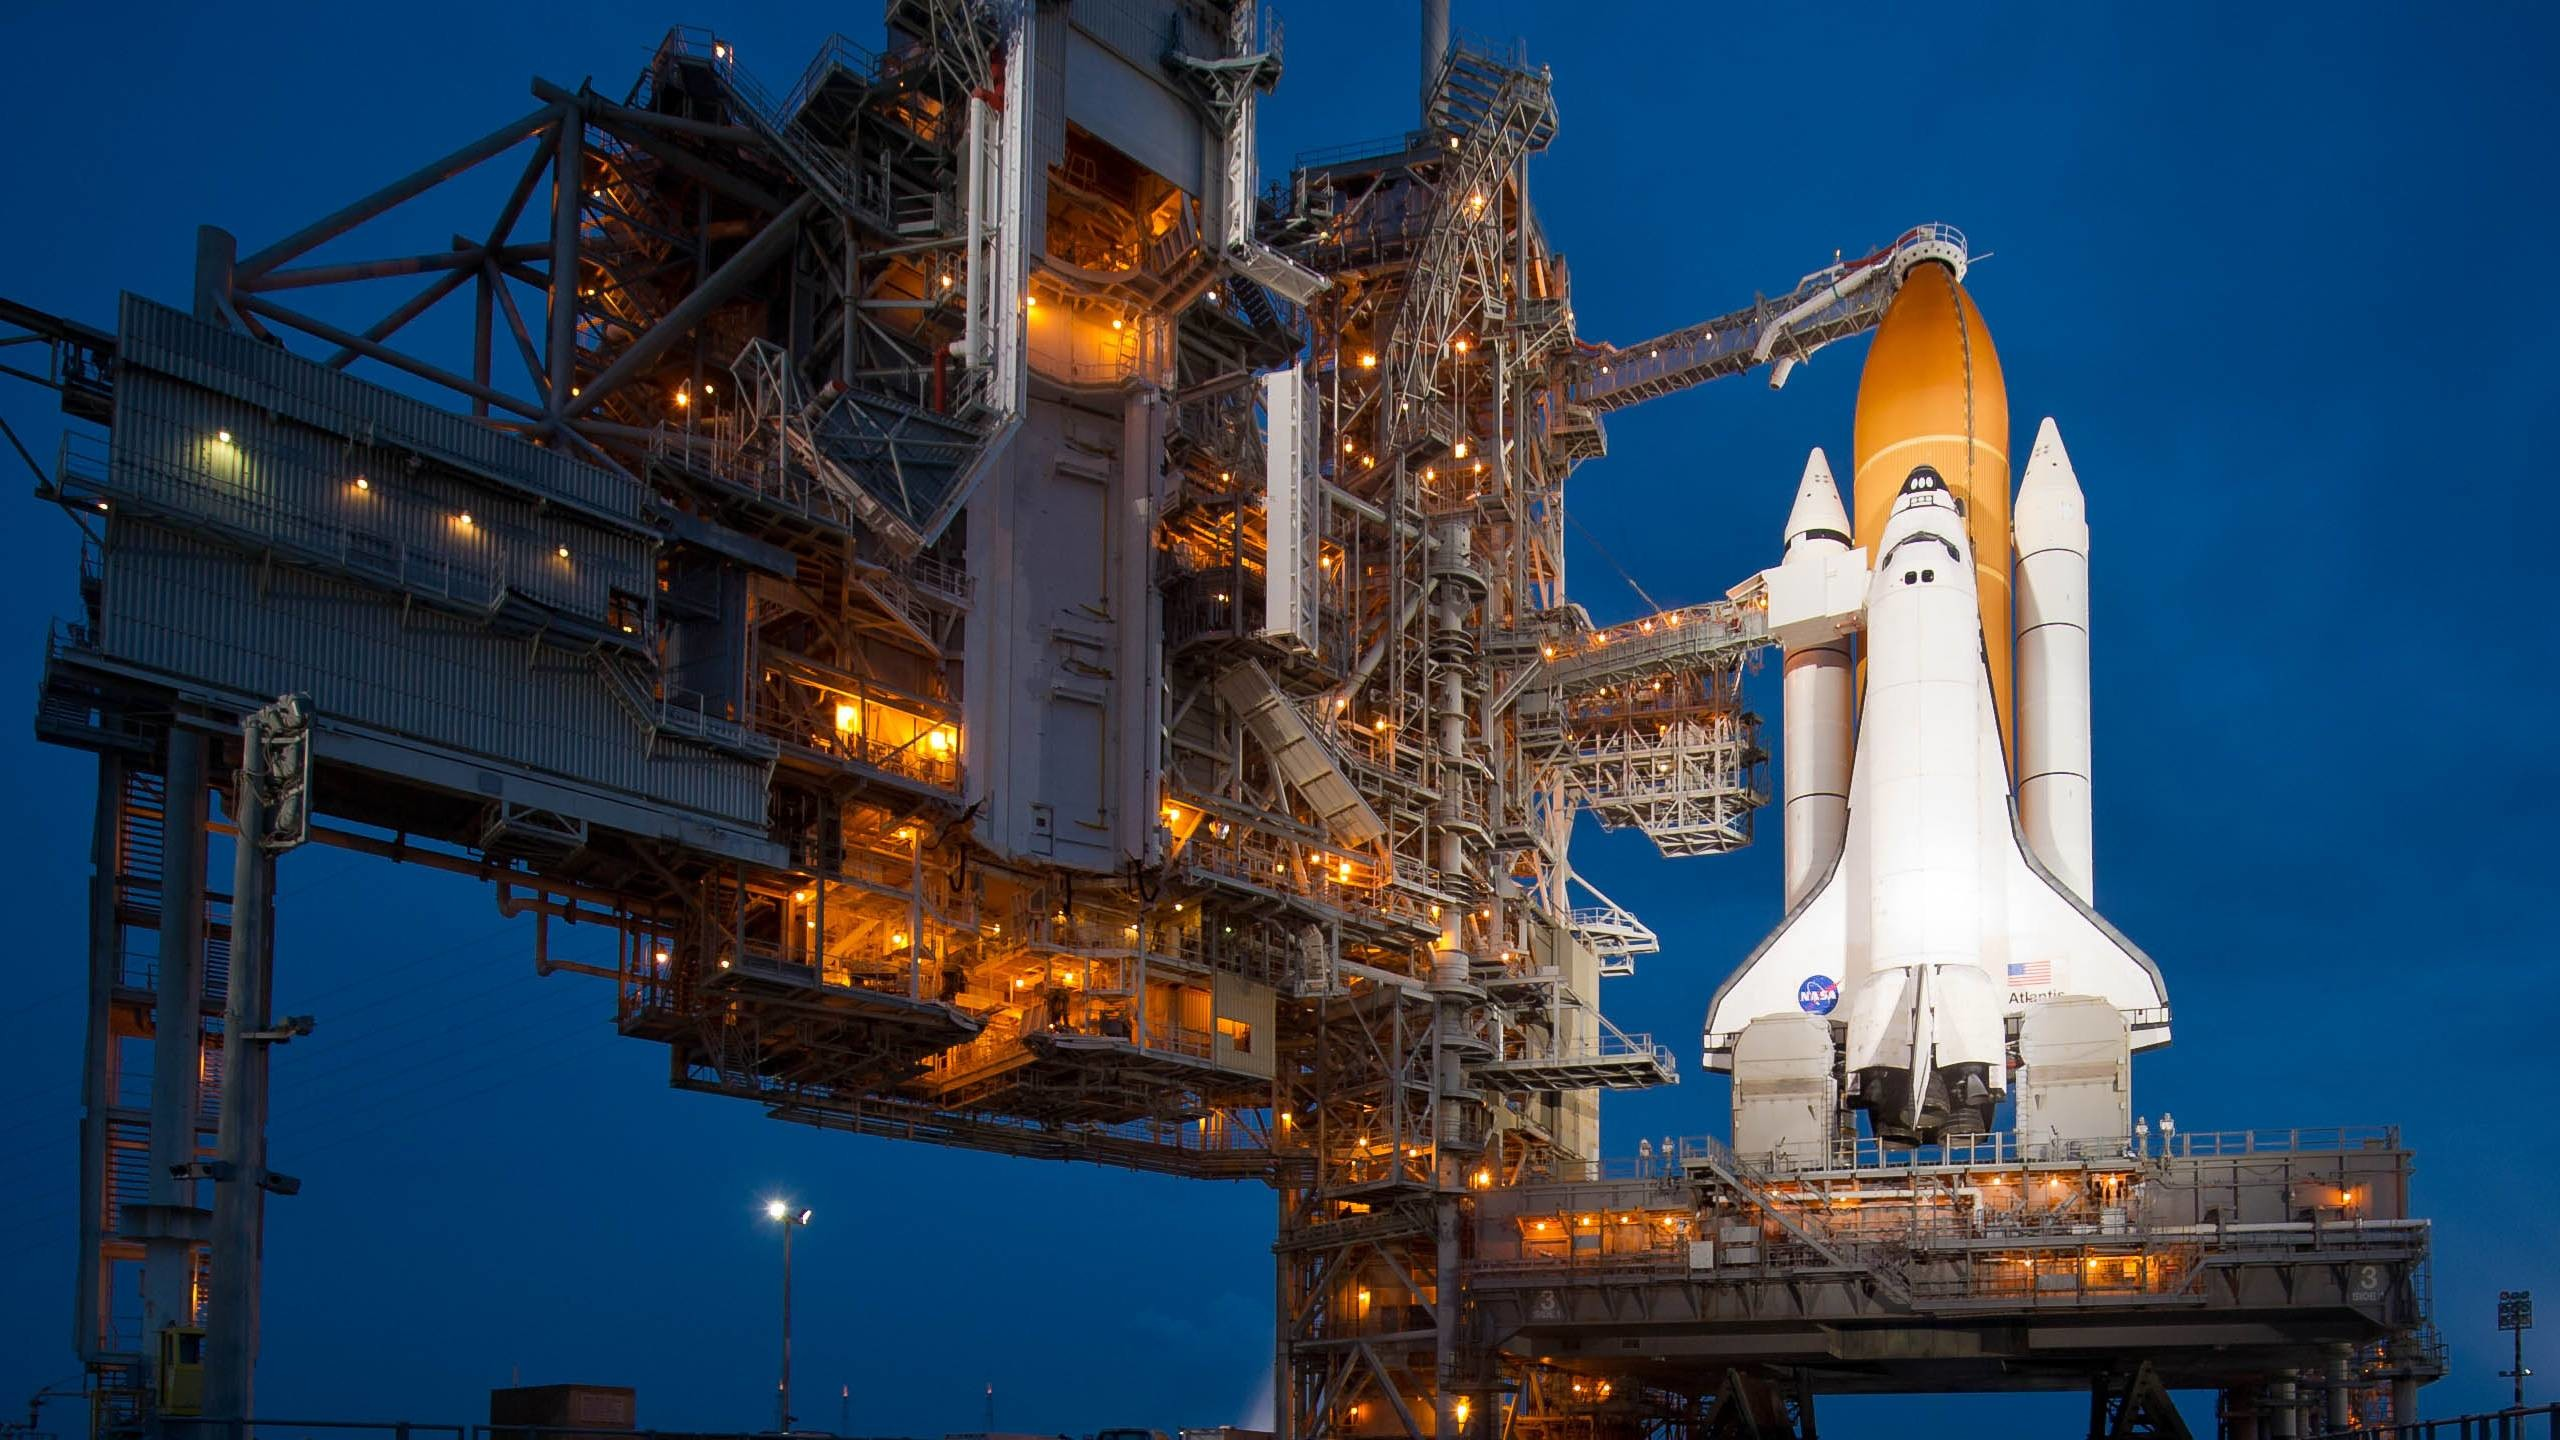 Nasa Space Shuttle Wallpaper 75 Images